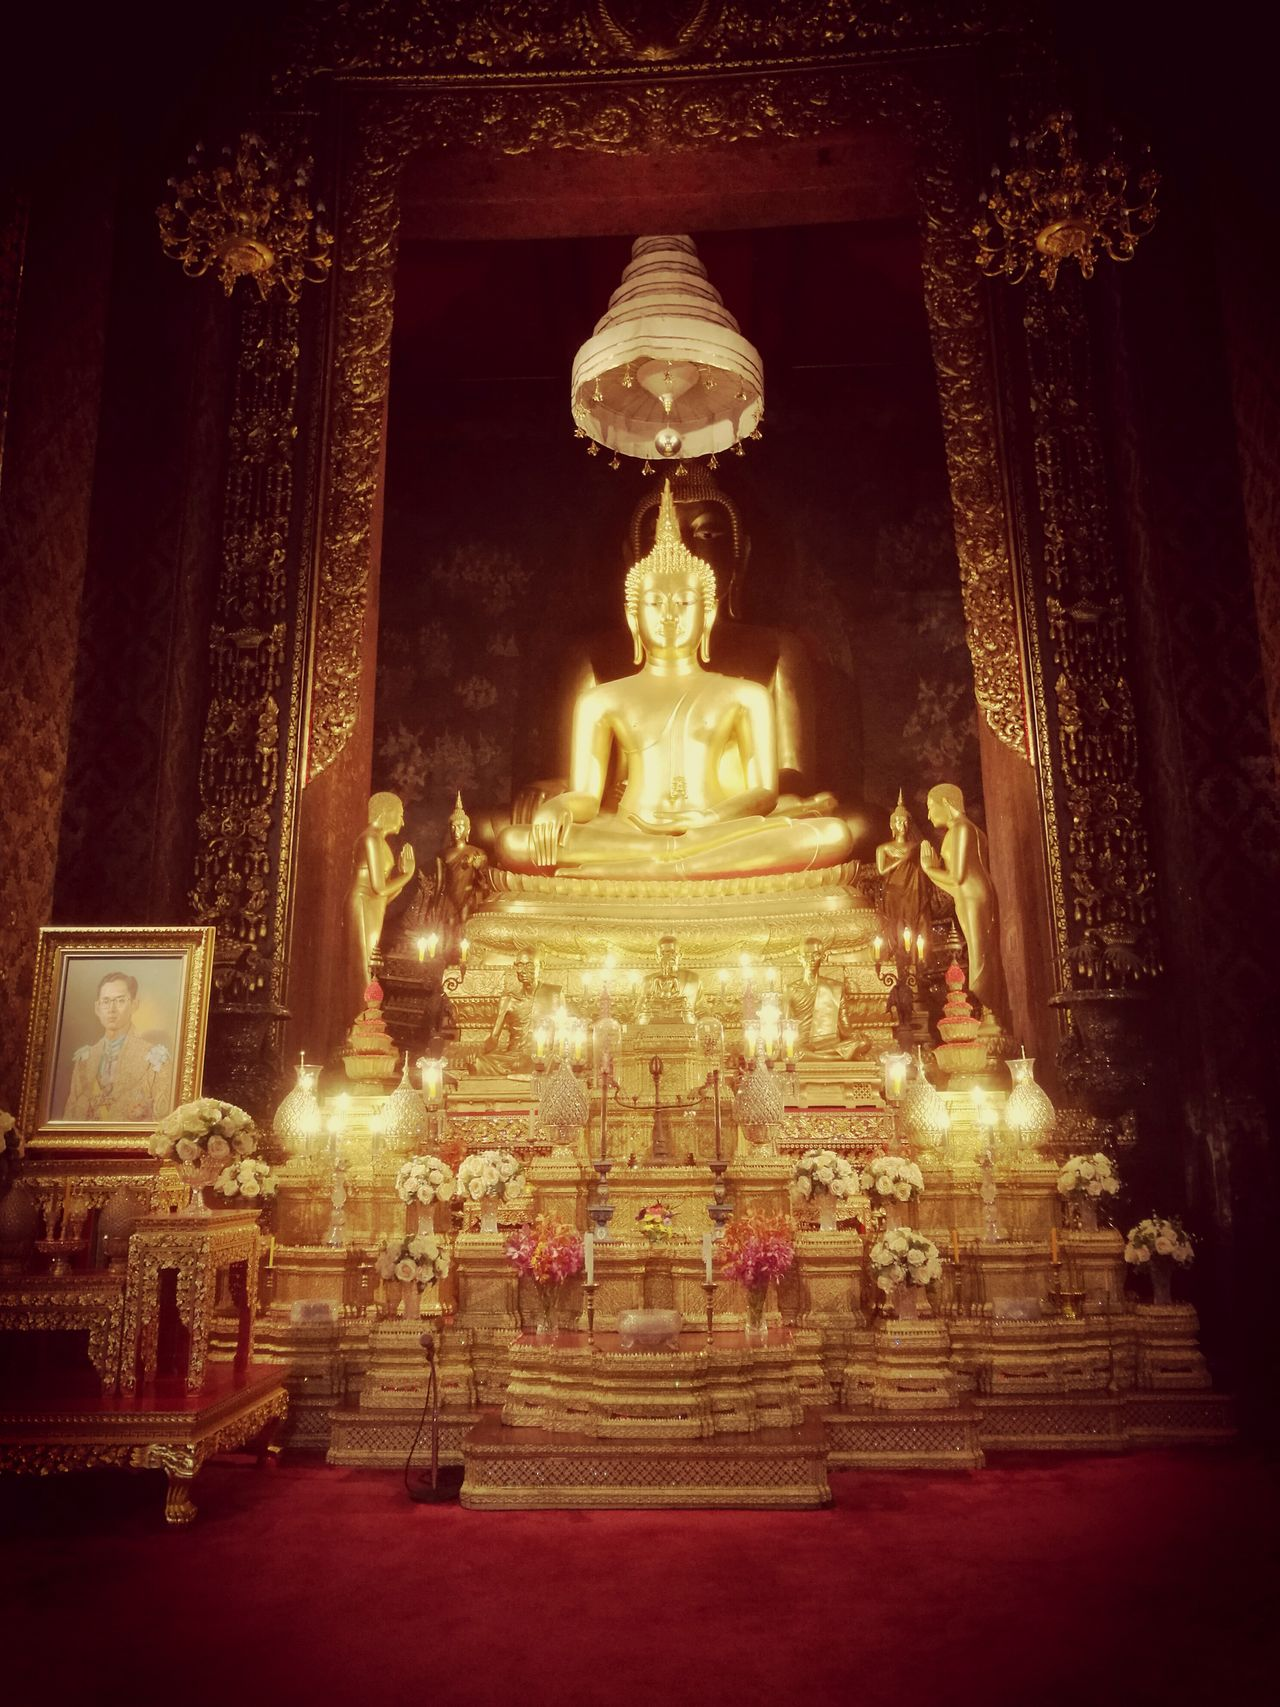 Thailand Bangkok Temple Architecture Spirituality Statue No People Gold Colored Religion Indoors  The Week On Eyem Spiritual Place Asian  Asian Photo Bangkok Streetphotography Architecture And Art Best EyeEm Shot Finding New Frontiers